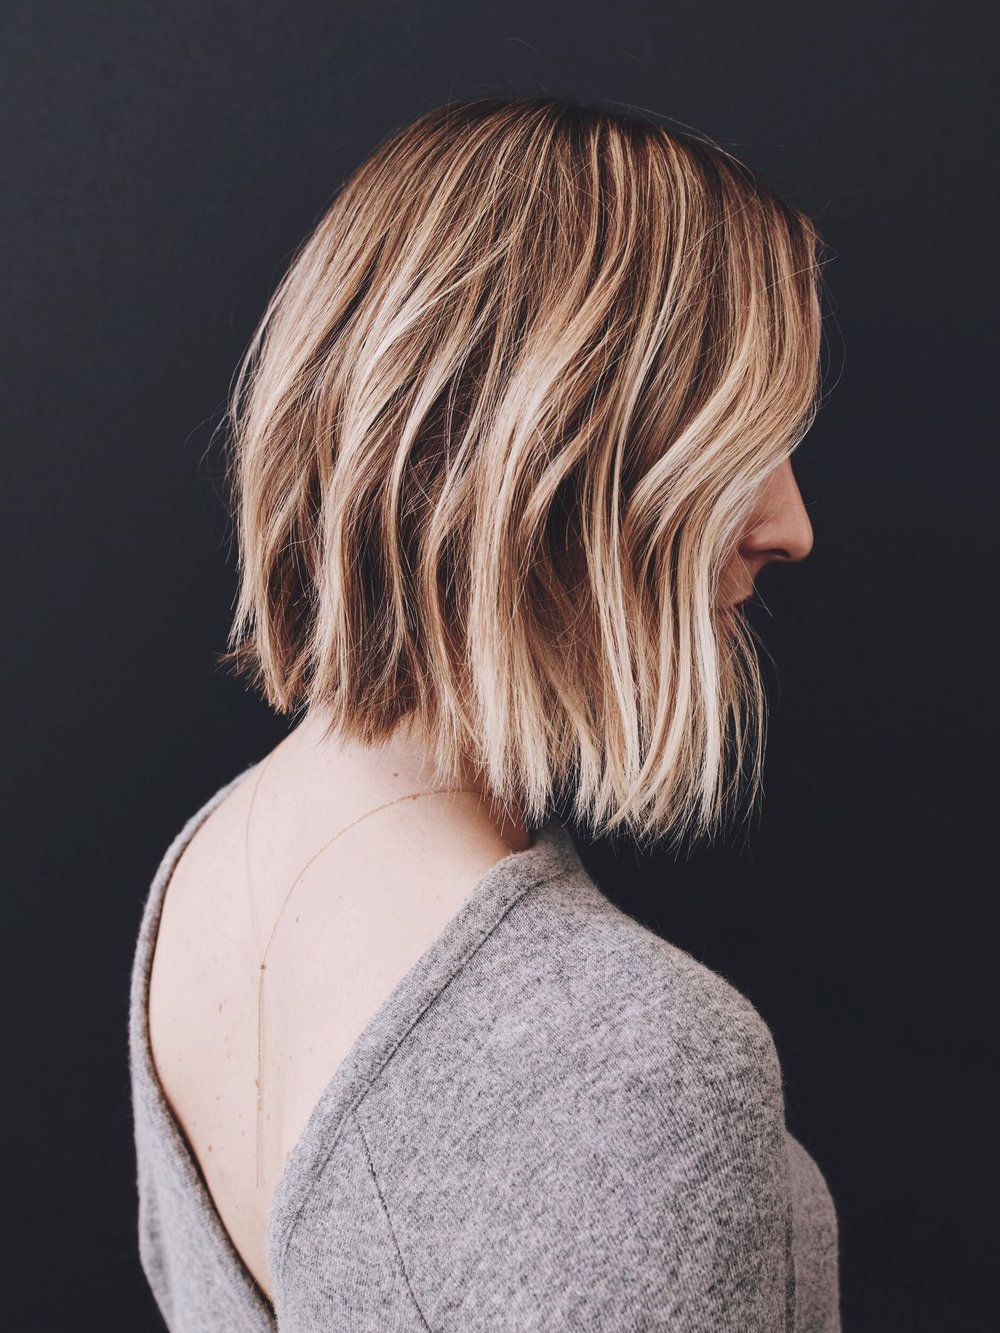 Pin On Hair Waves Regarding Matte Shaggy Bob Hairstyles (View 18 of 20)